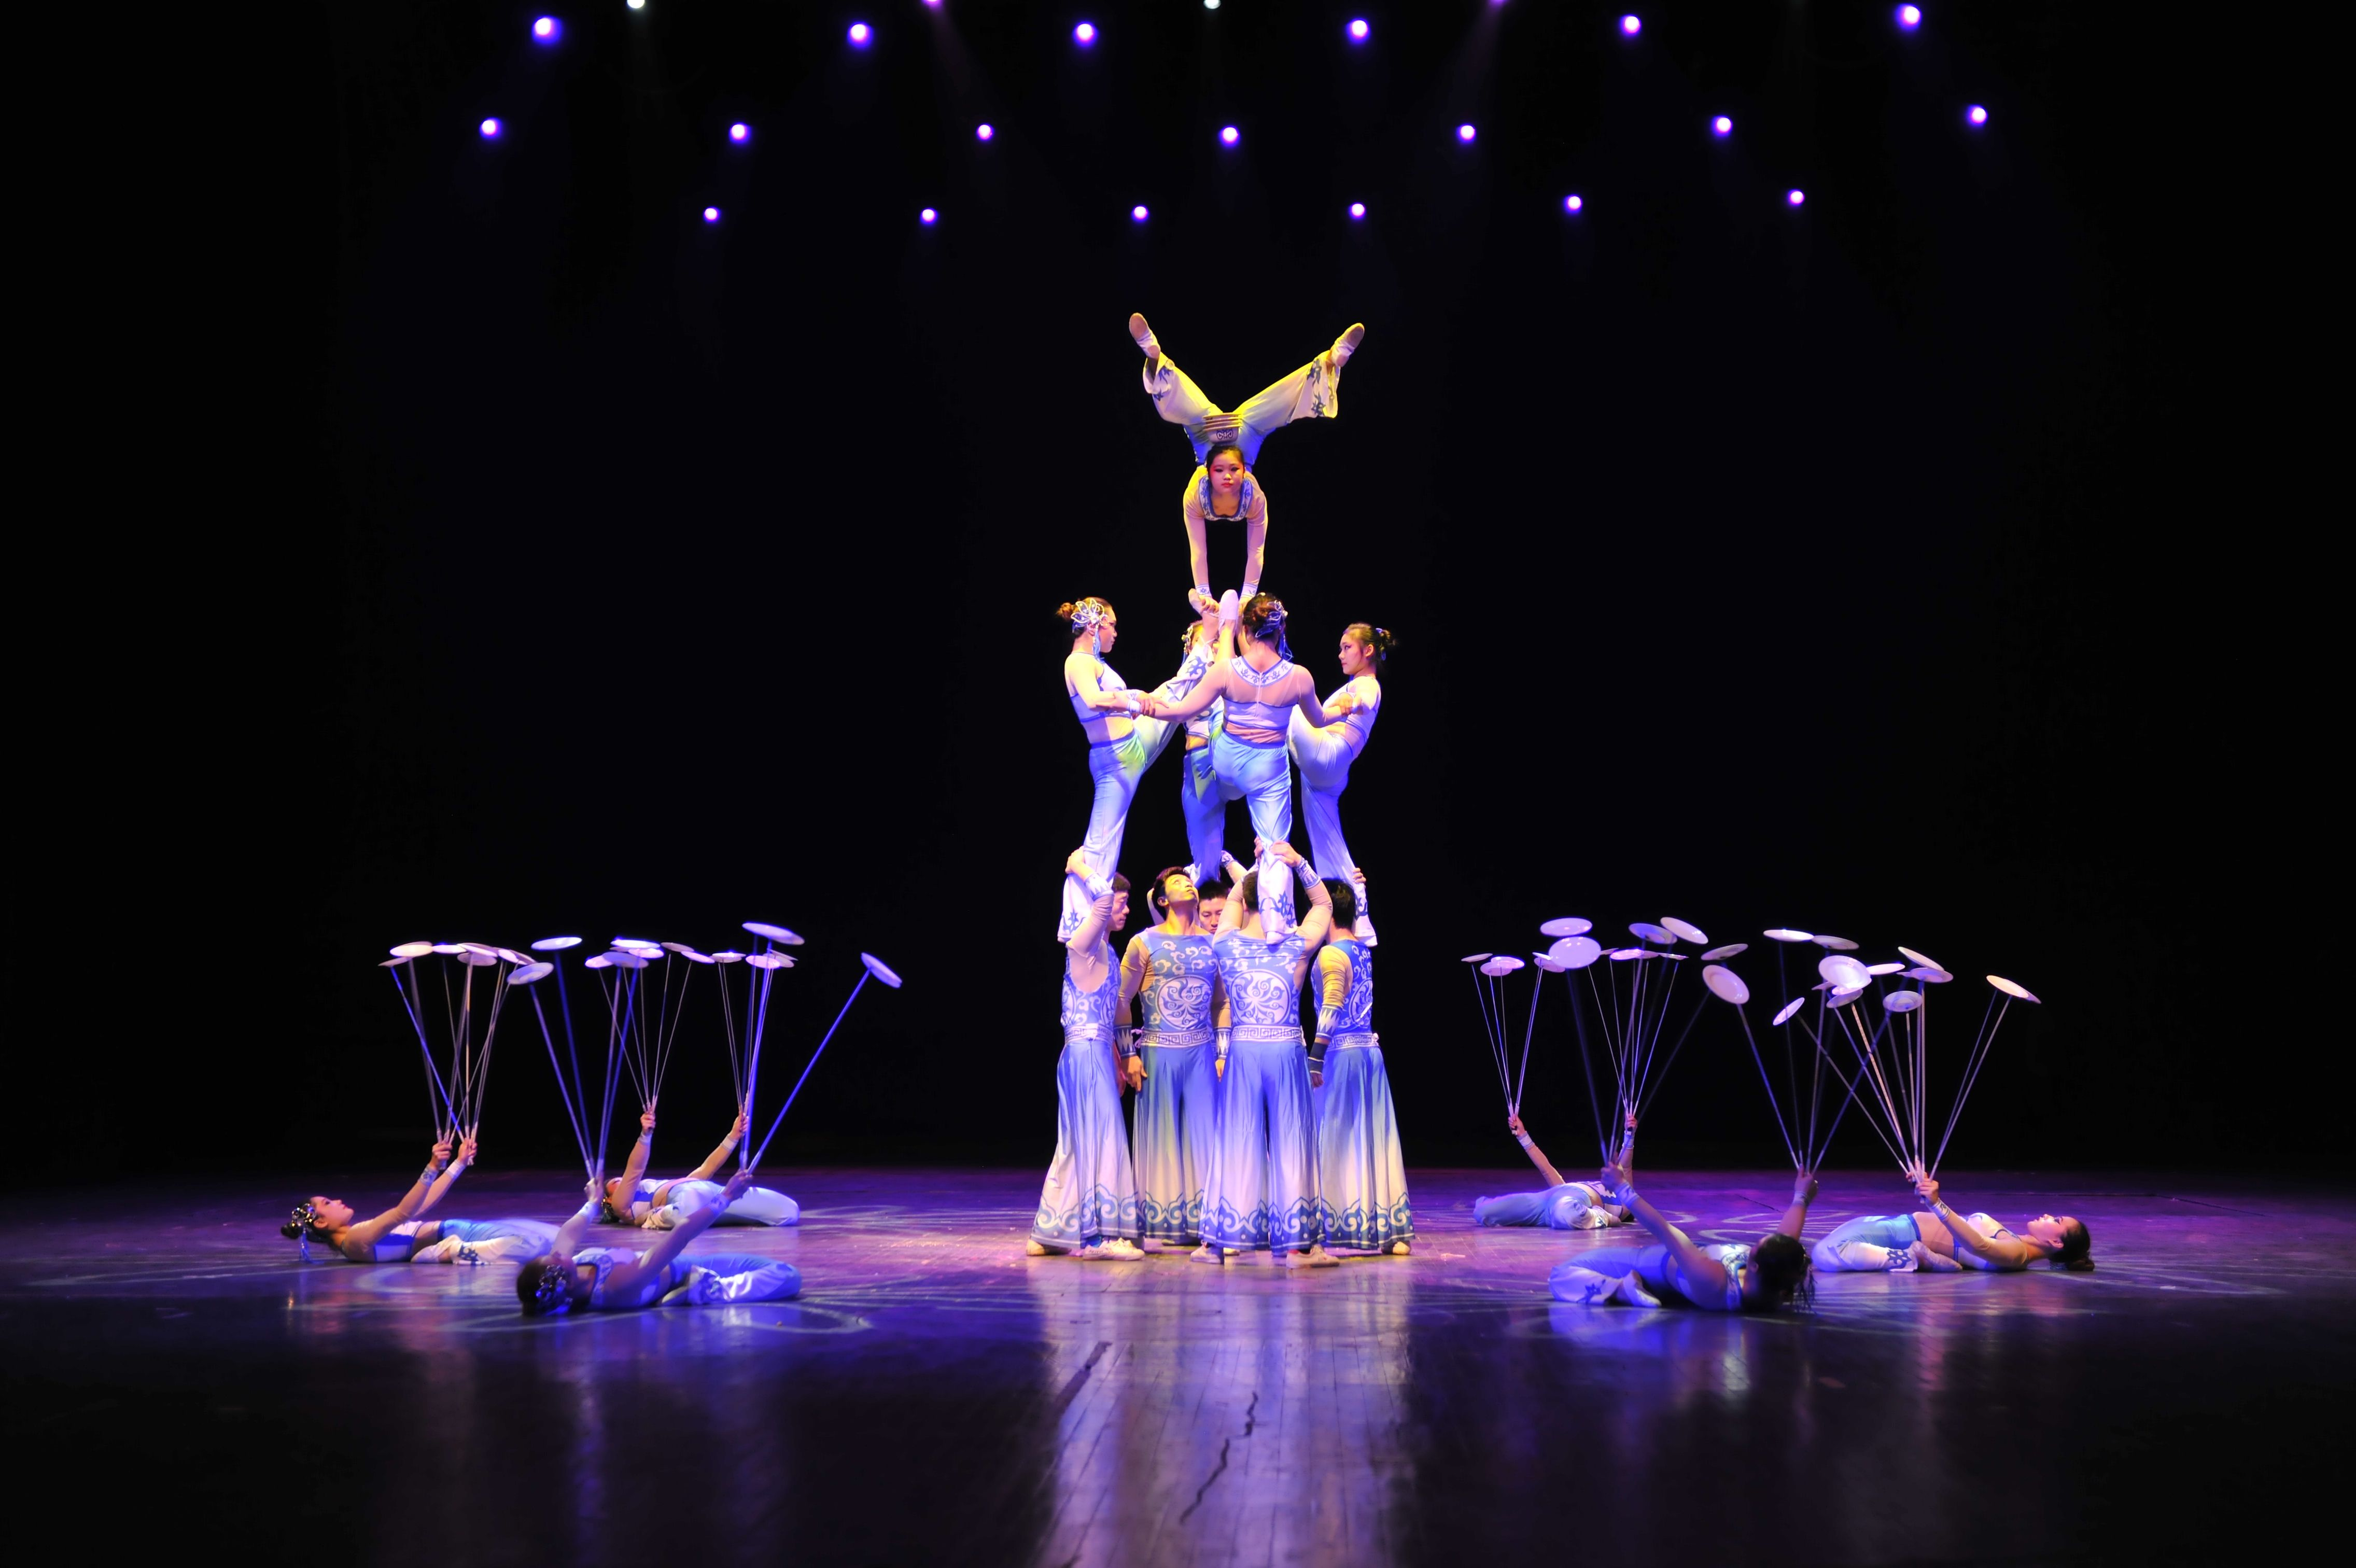 NATIONAL ACROBATS OF THE PEOPLE'S REPUBLIC OF CHINA, Thursday, November 6, 7:30 PM, Fine Arts Center Concert Hall